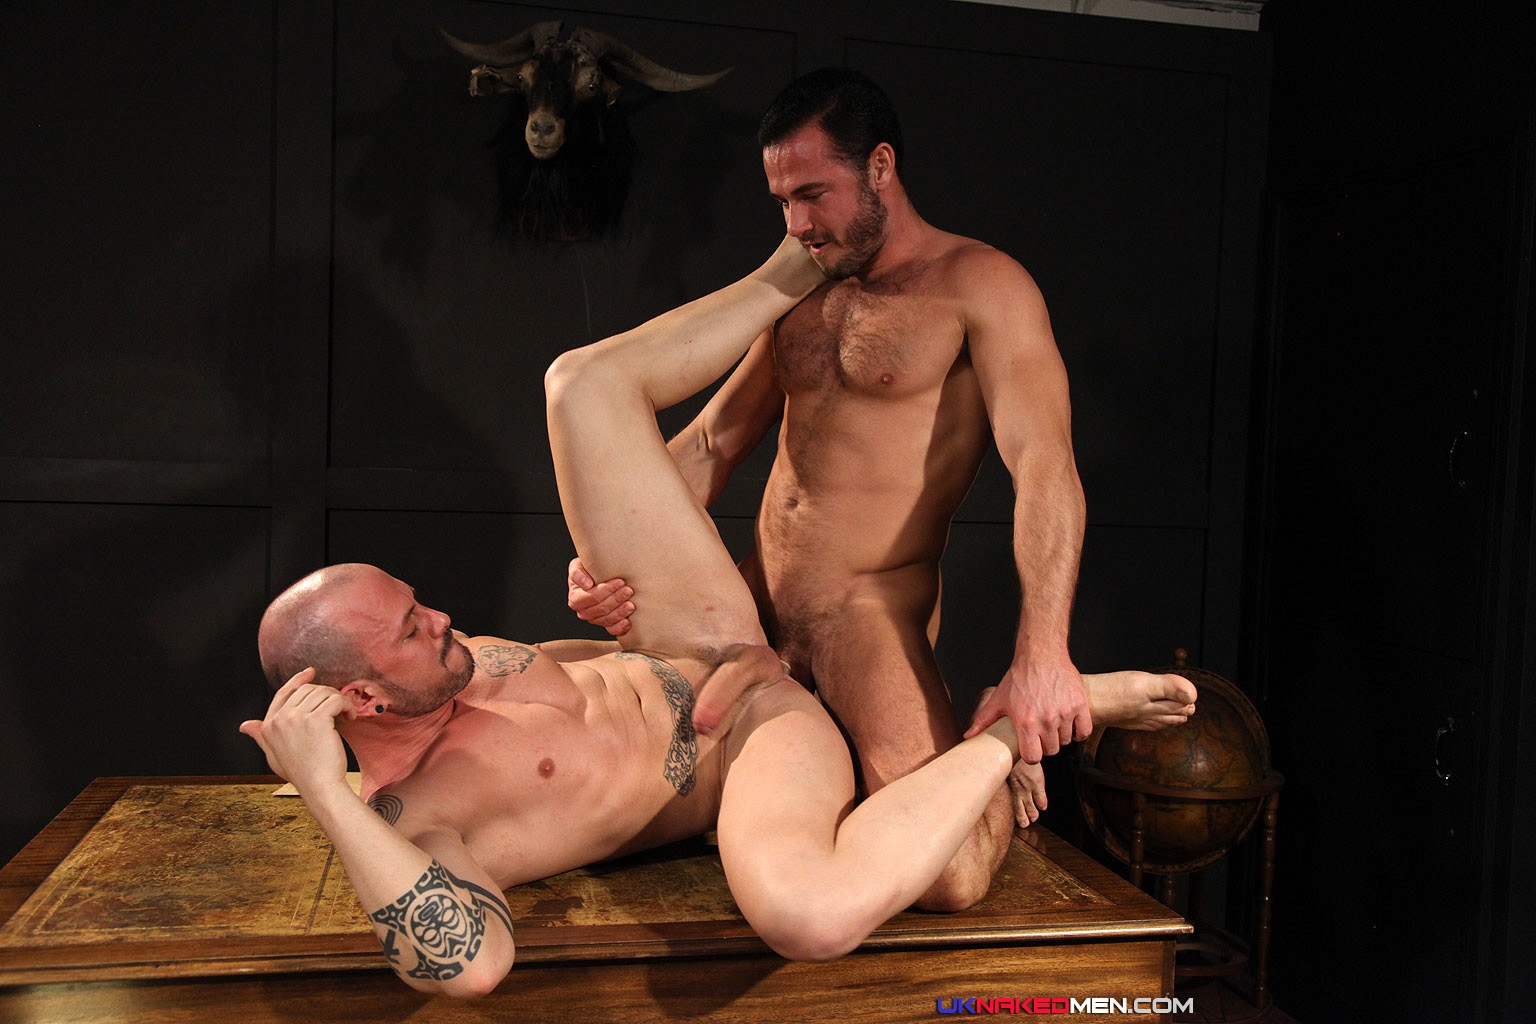 Jessy ares max duran and apologise, but